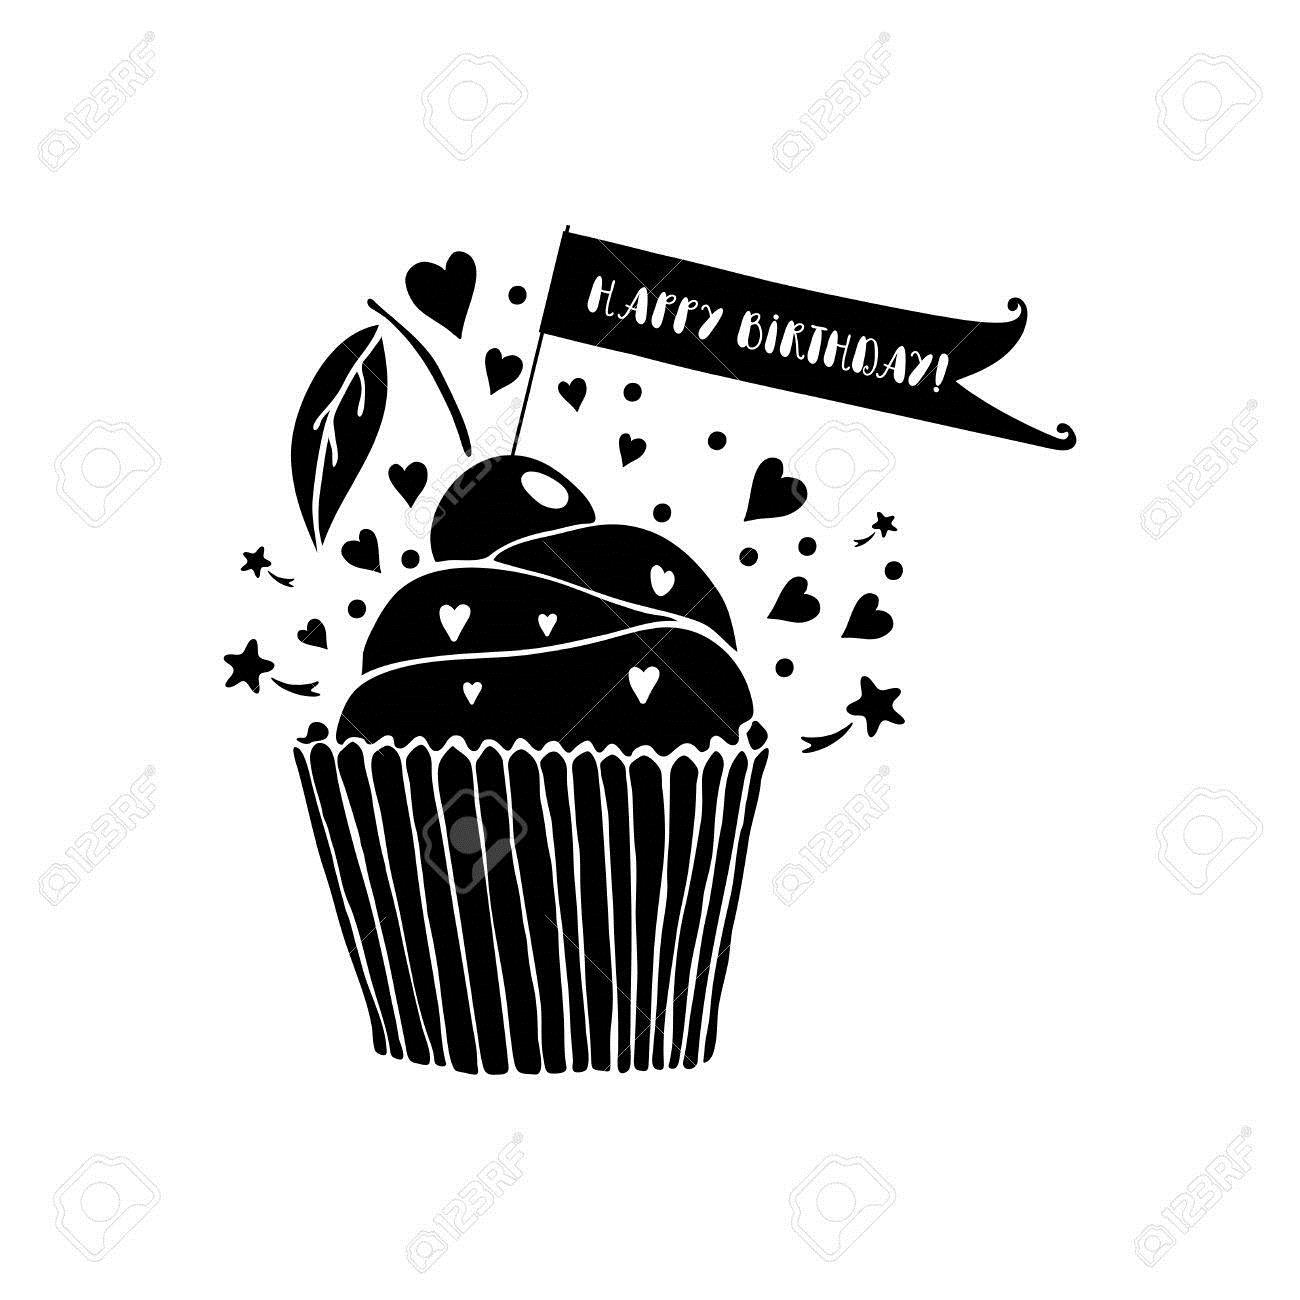 birthday card clipart black and white ; 64963703-happy-birthday-greeting-card-with-cupcake-on-white-background-black-and-white-vector-illustration-gr